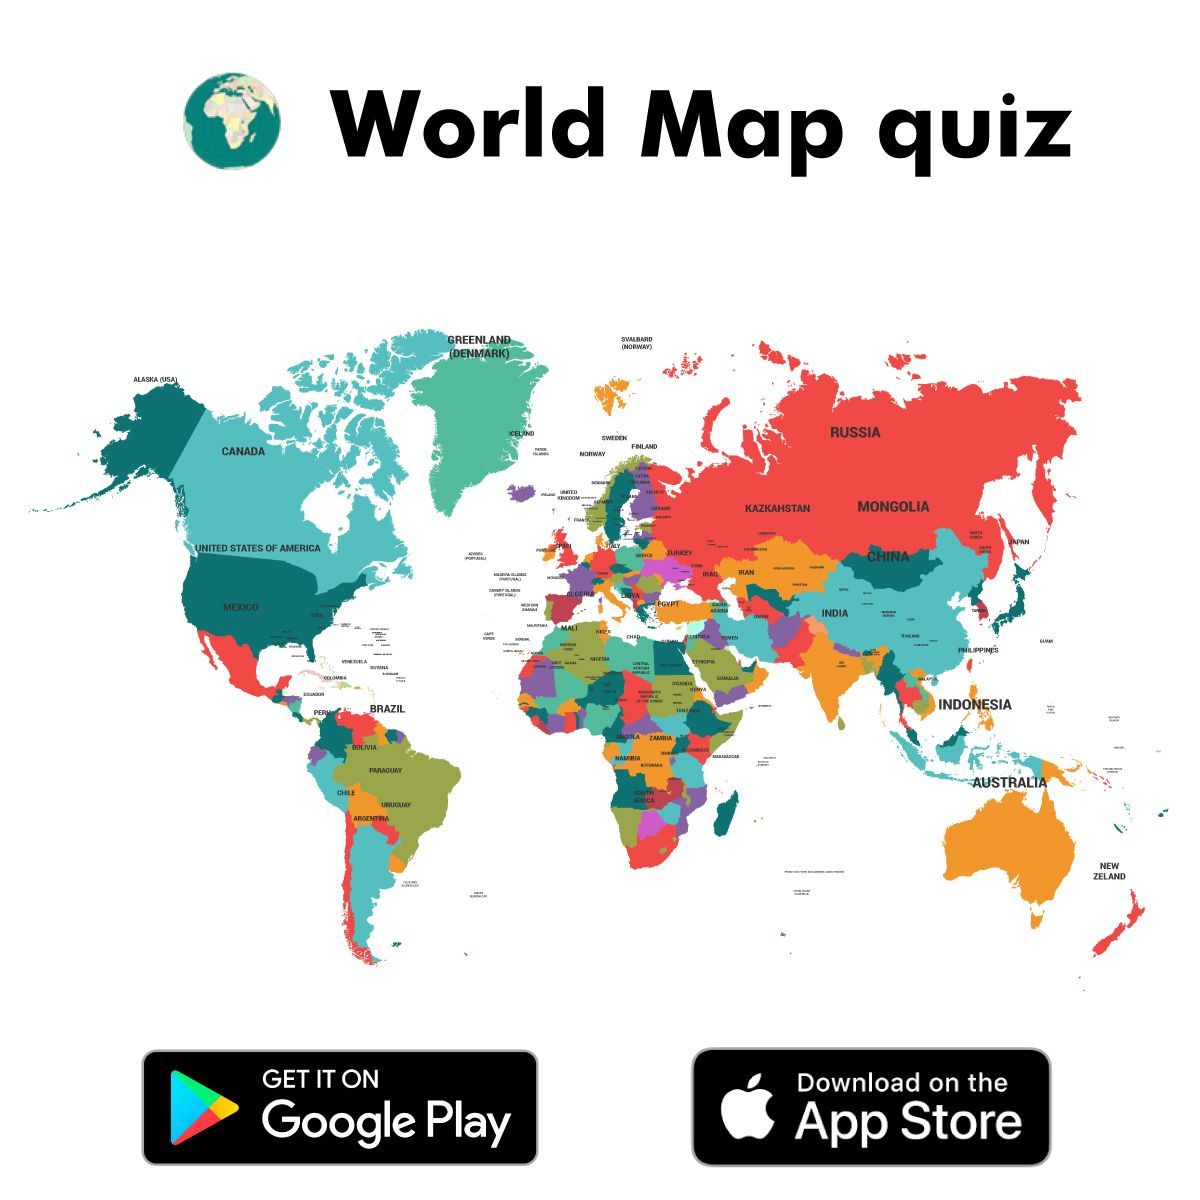 Map Of The World Quizzes World Map quiz app is an interesting app developed for kids that